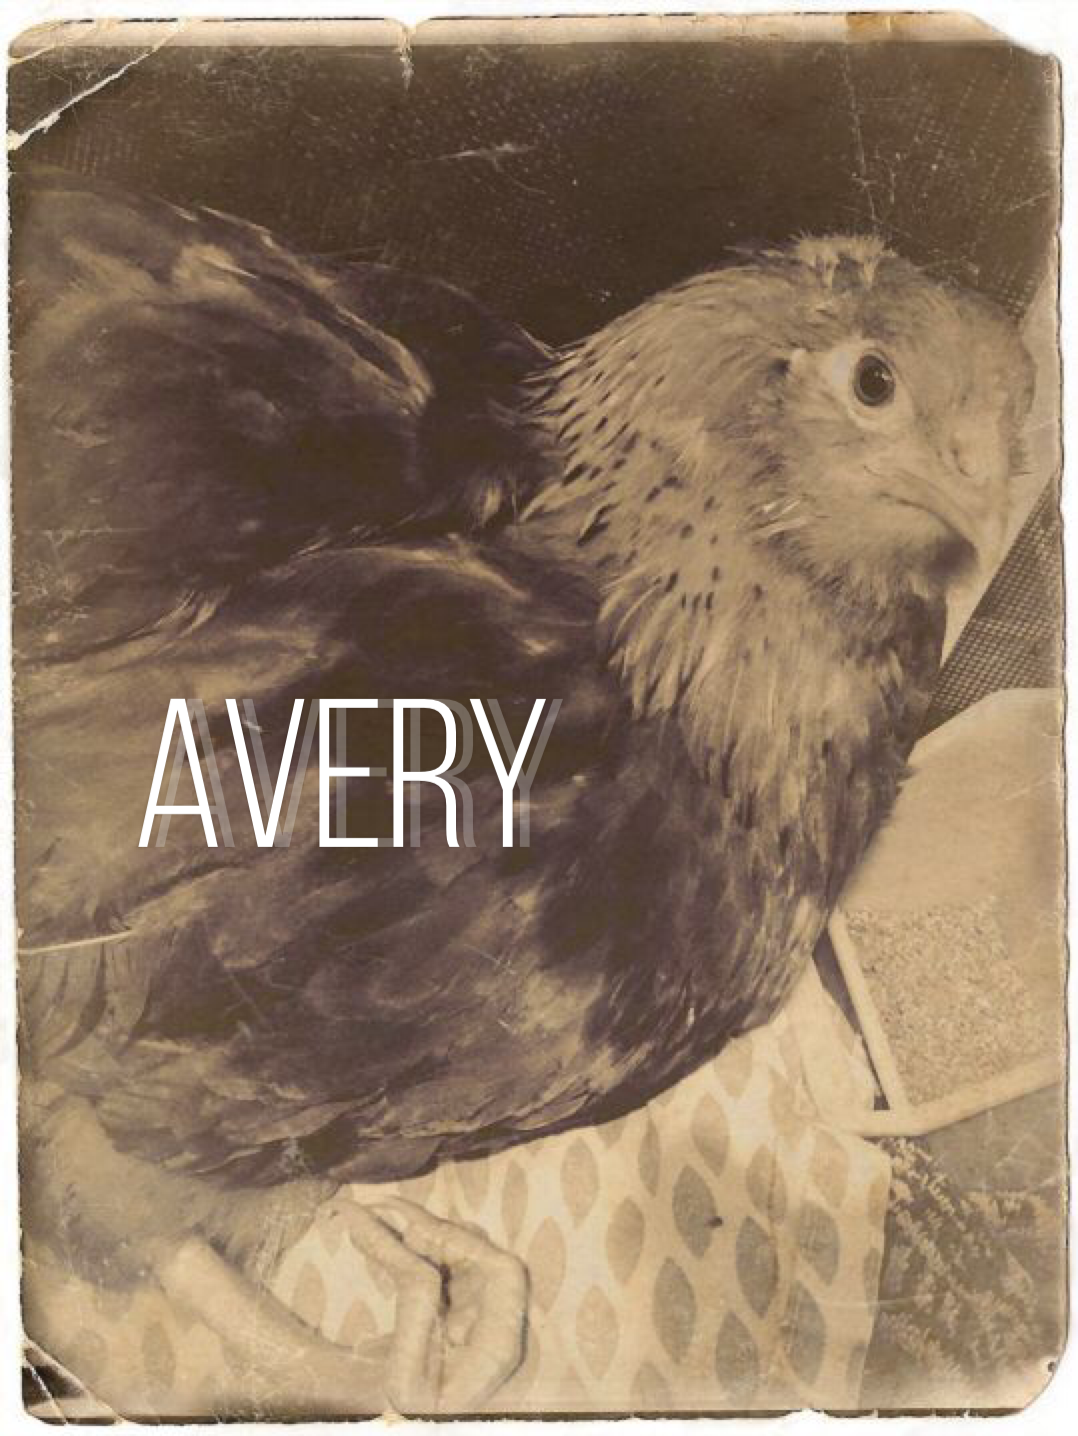 AVERY - Born in a class chick hatching experiment, Avery has a bent and disabled leg.